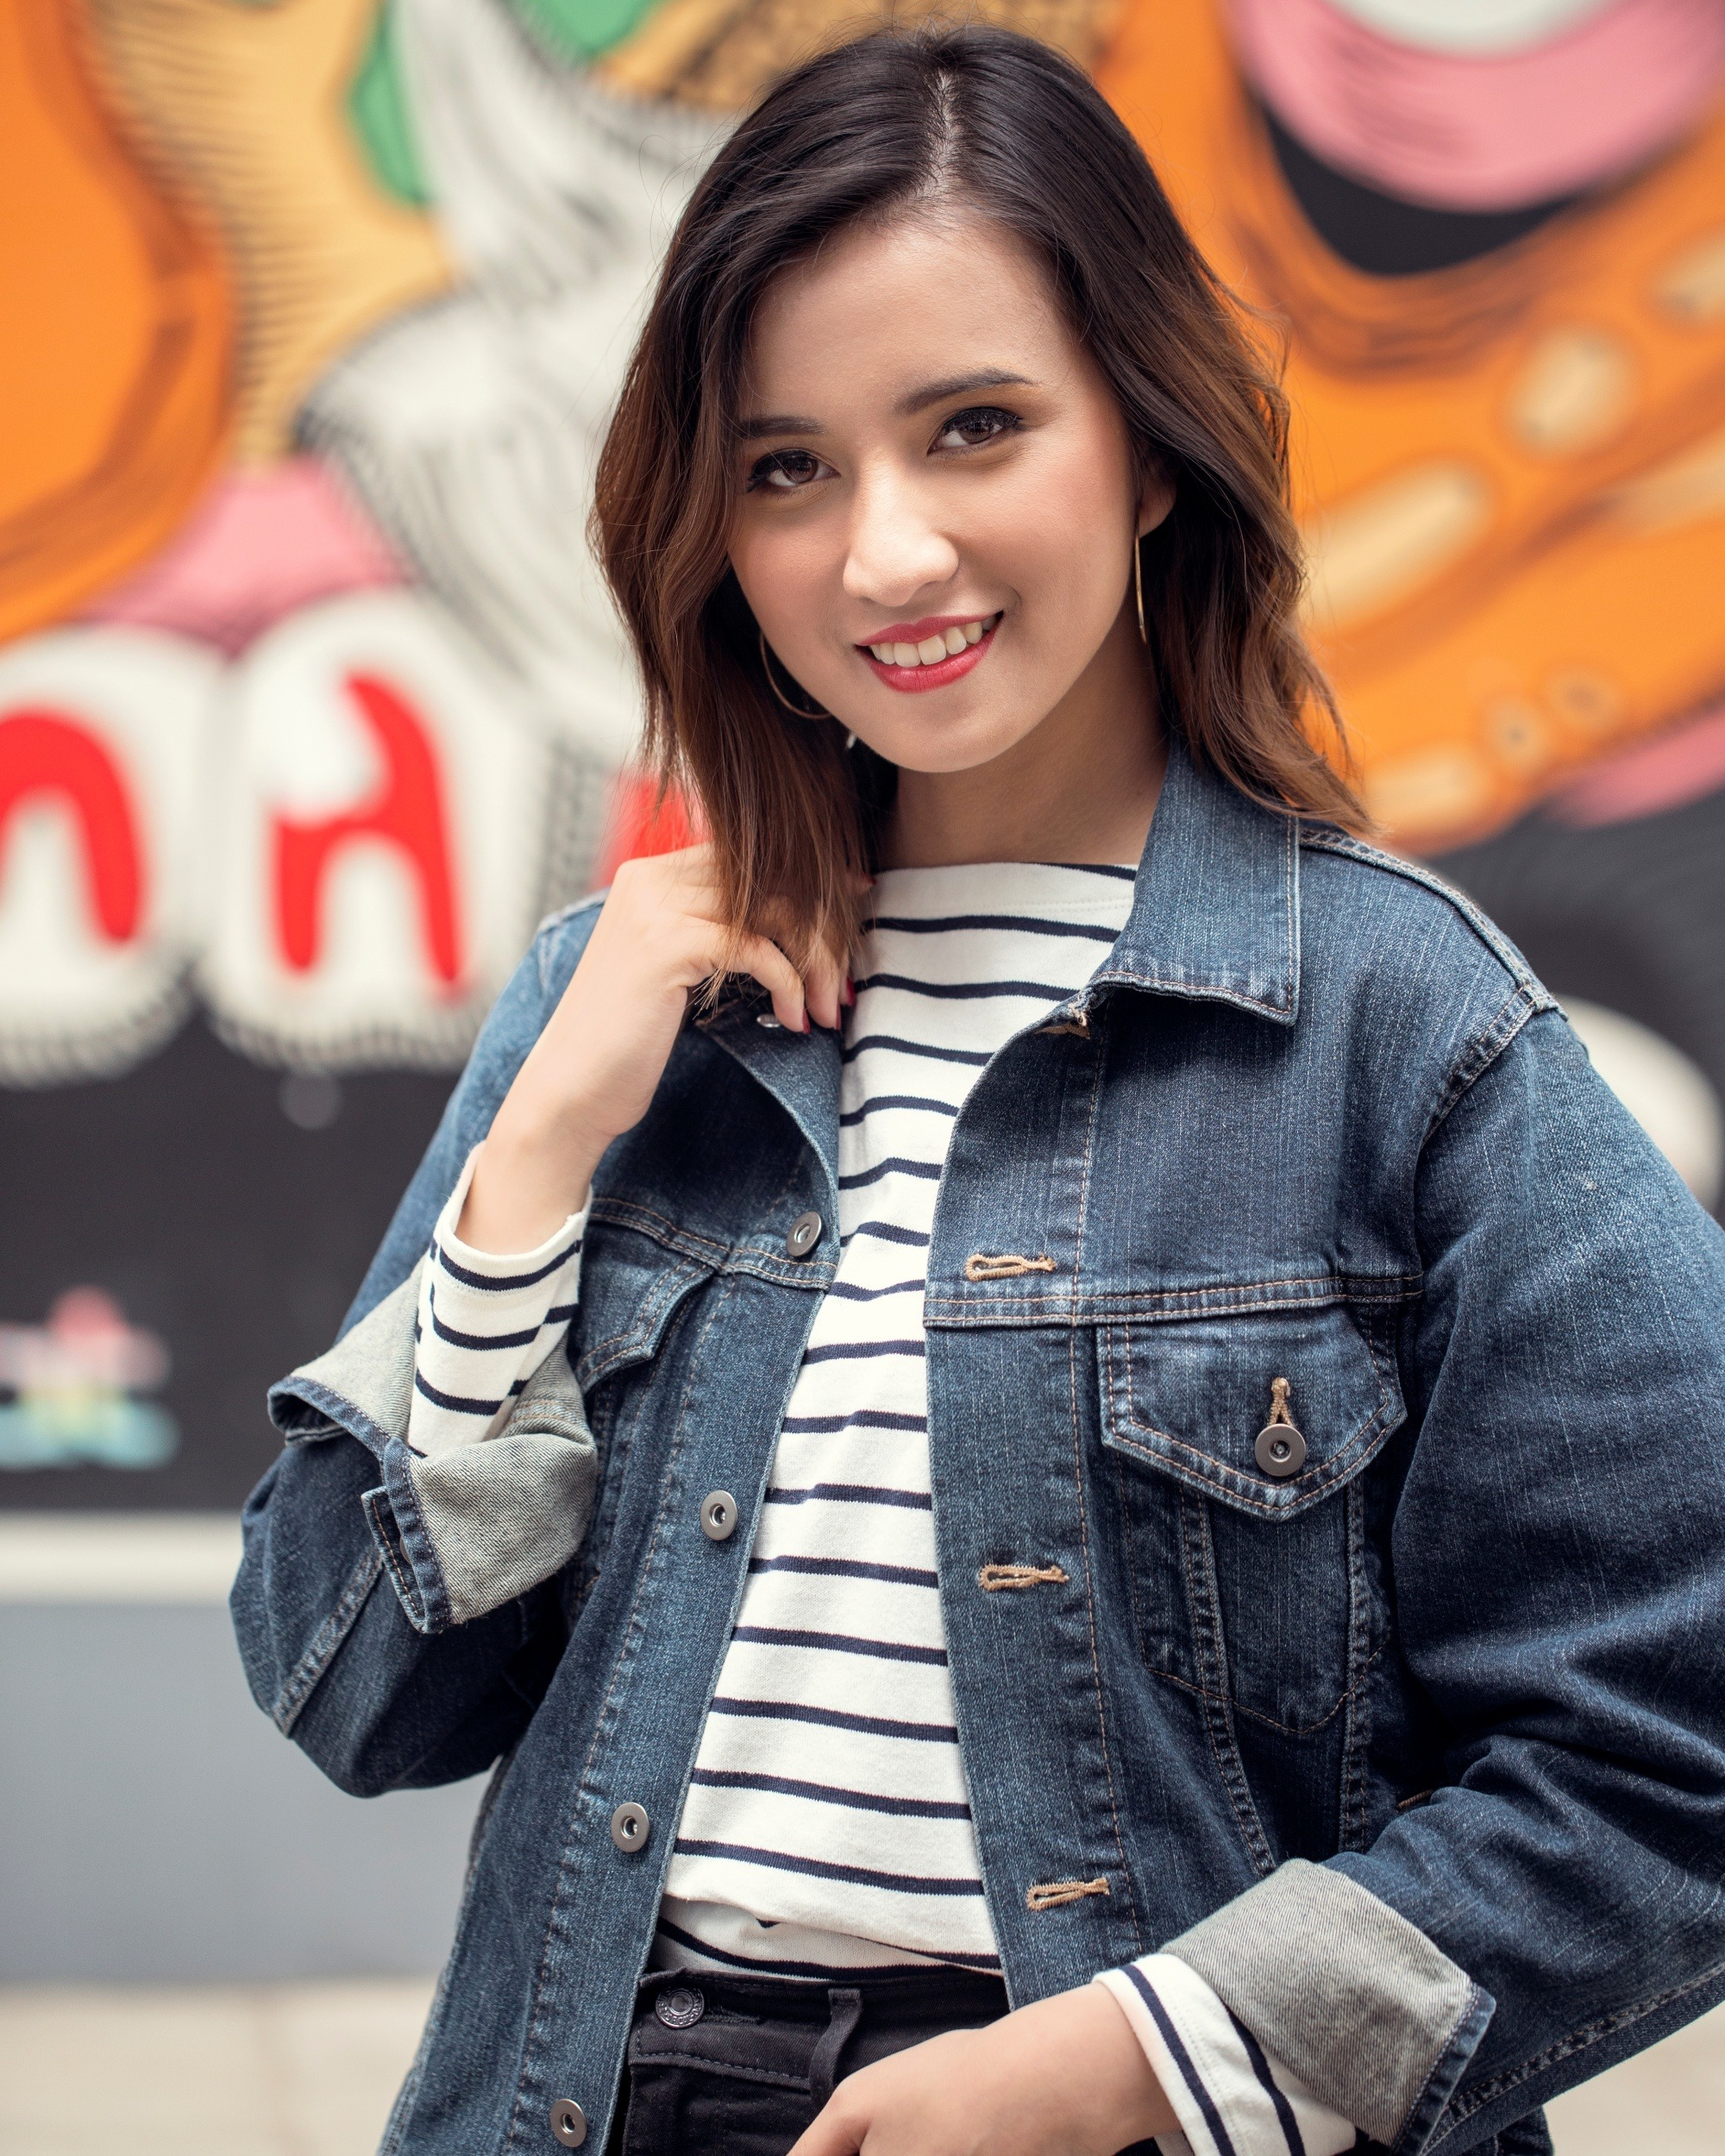 Bob haircuts for fine hair: Asian woman with dark brown messy layered bob wearing a denim jacket in front of a street mural